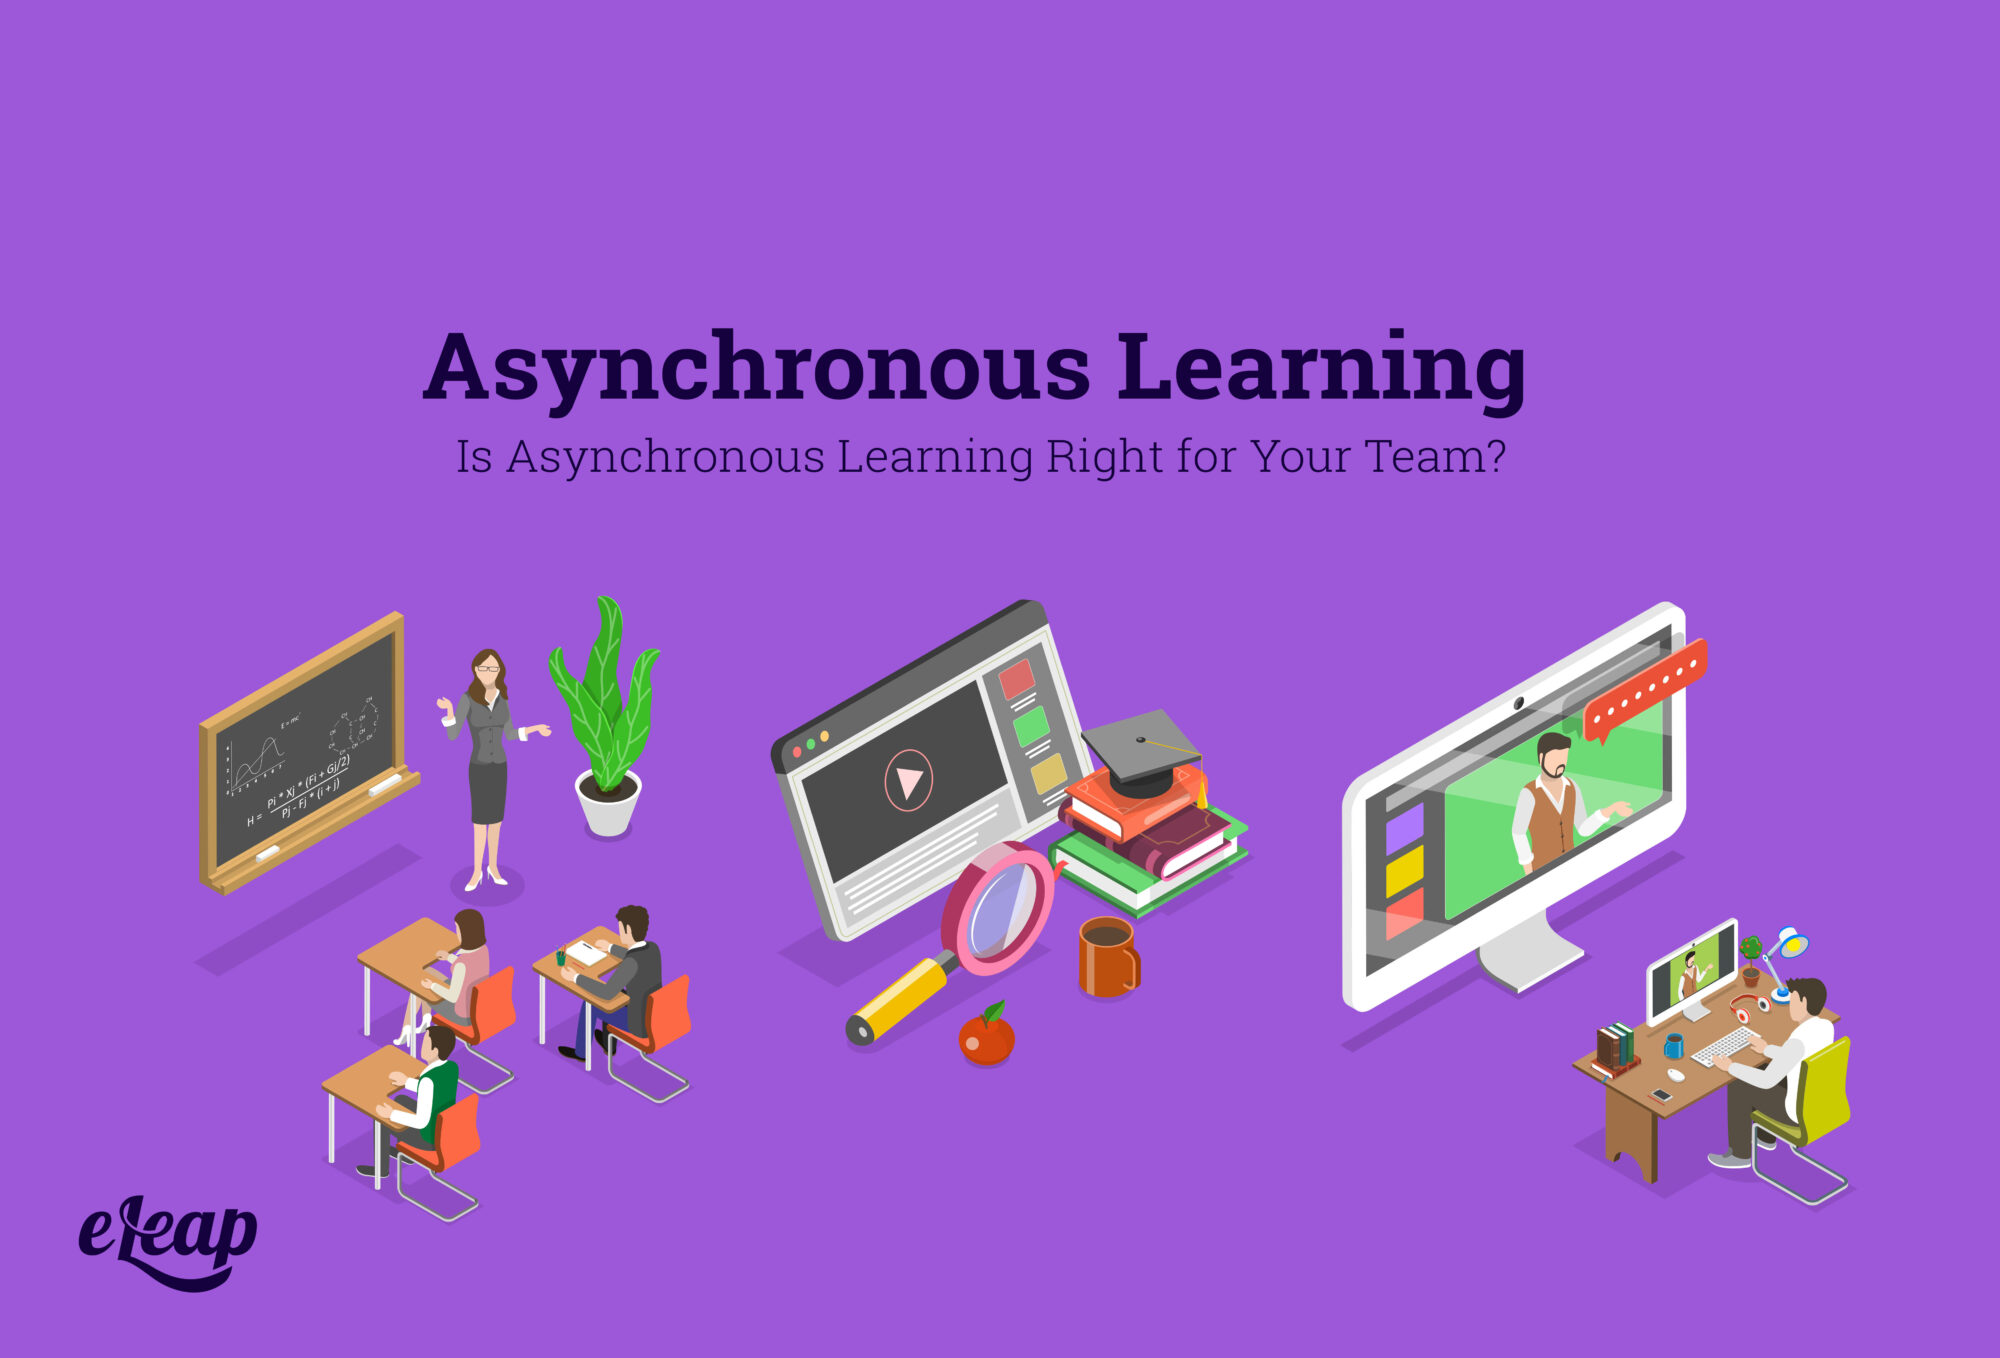 Is Asynchronous Learning Right for Your Team?